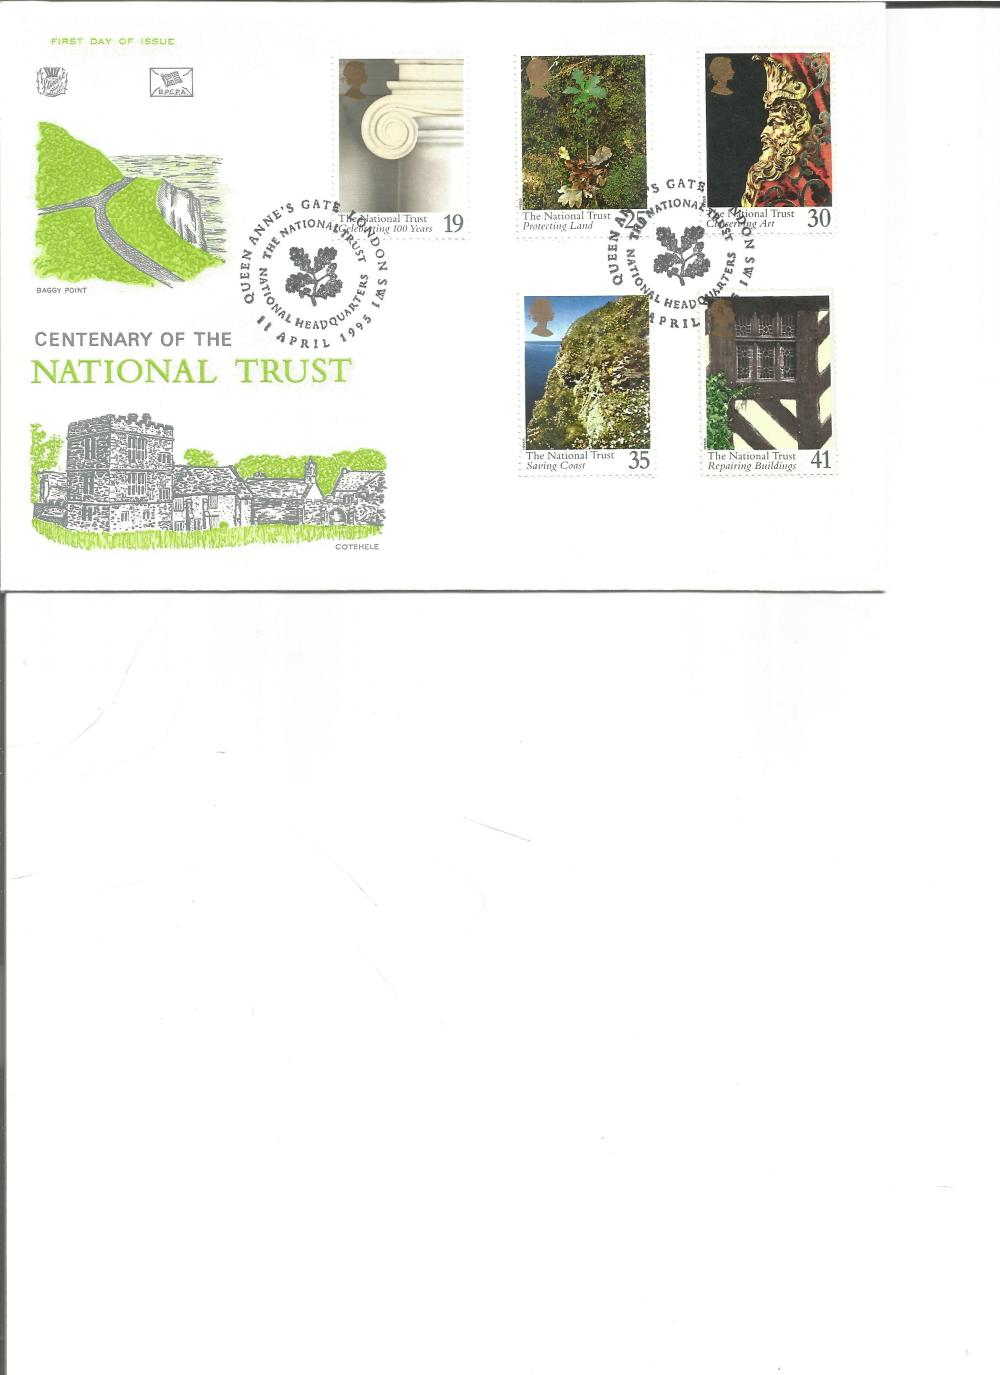 FDC Centenary of the National Trust c/w set of five commemorative stamps PM The National Trust